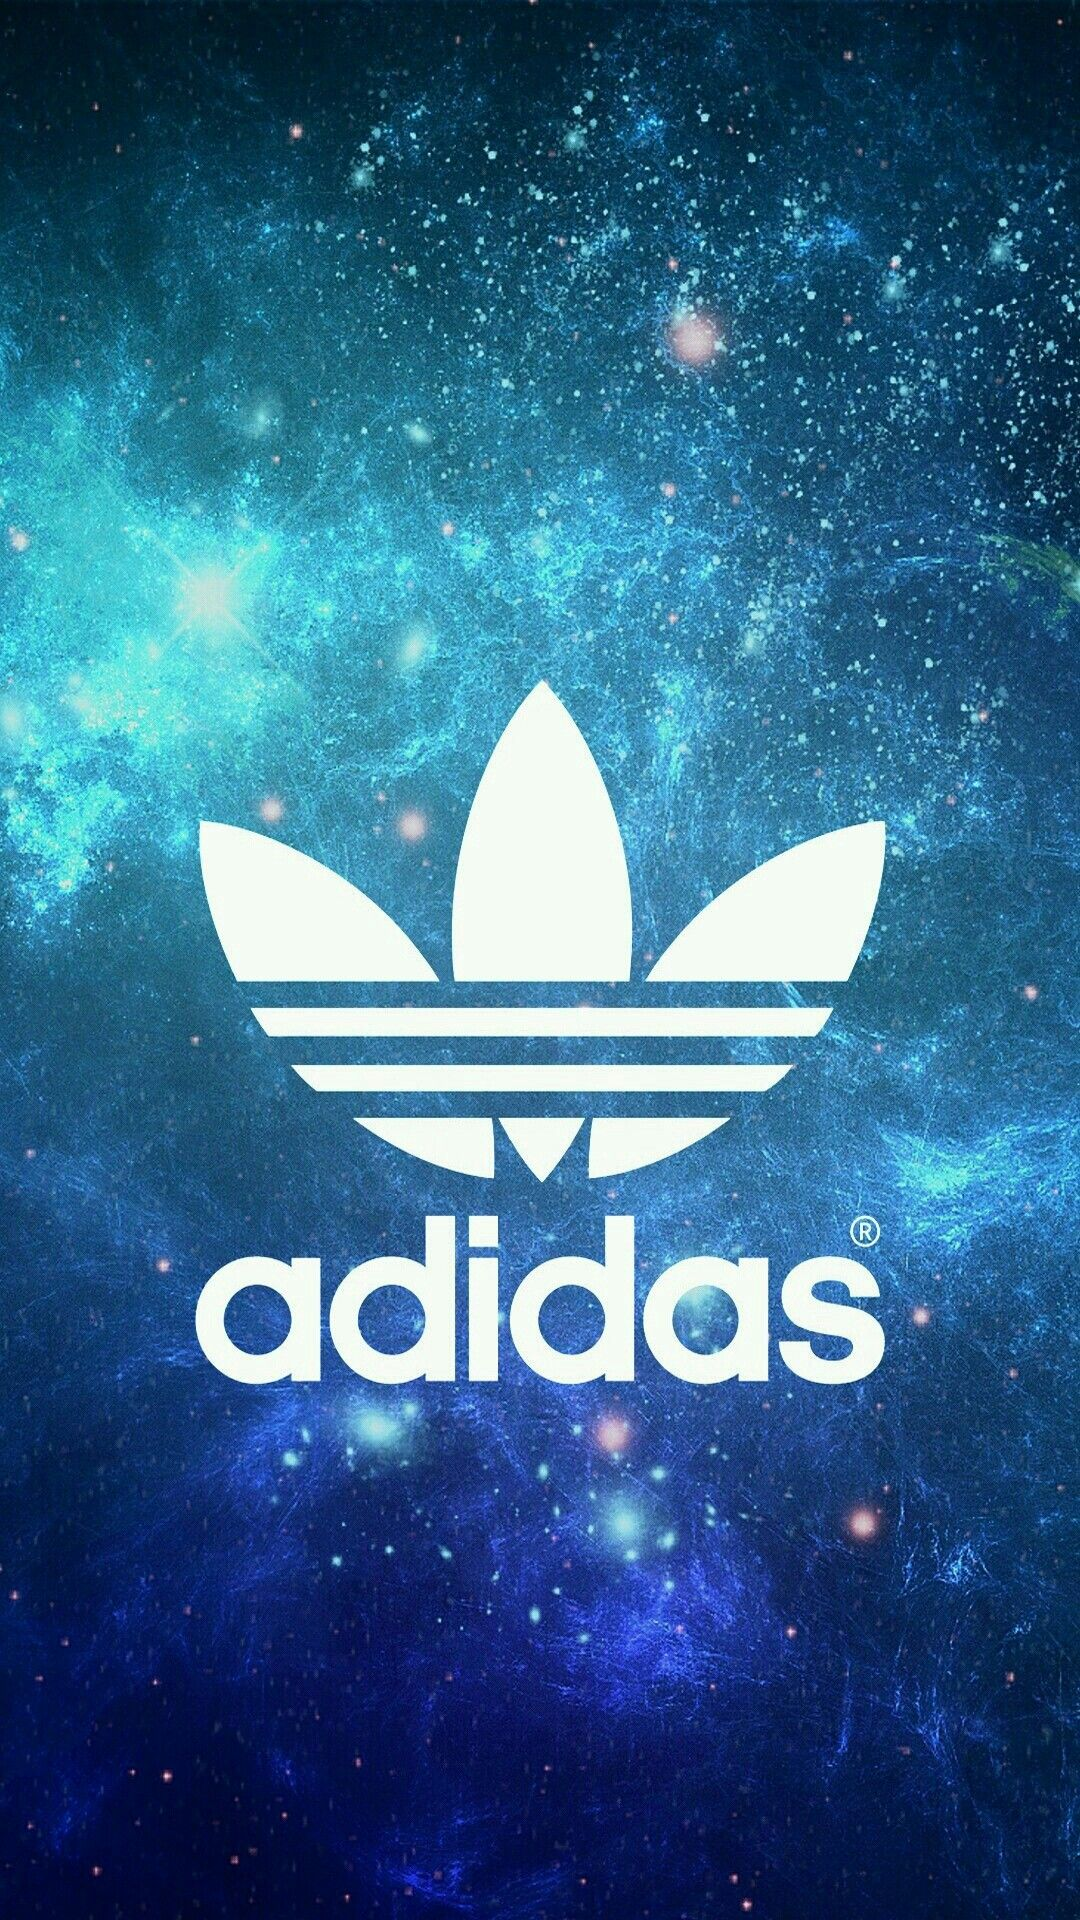 Wallpaper (With images) Adidas wallpapers, Nike